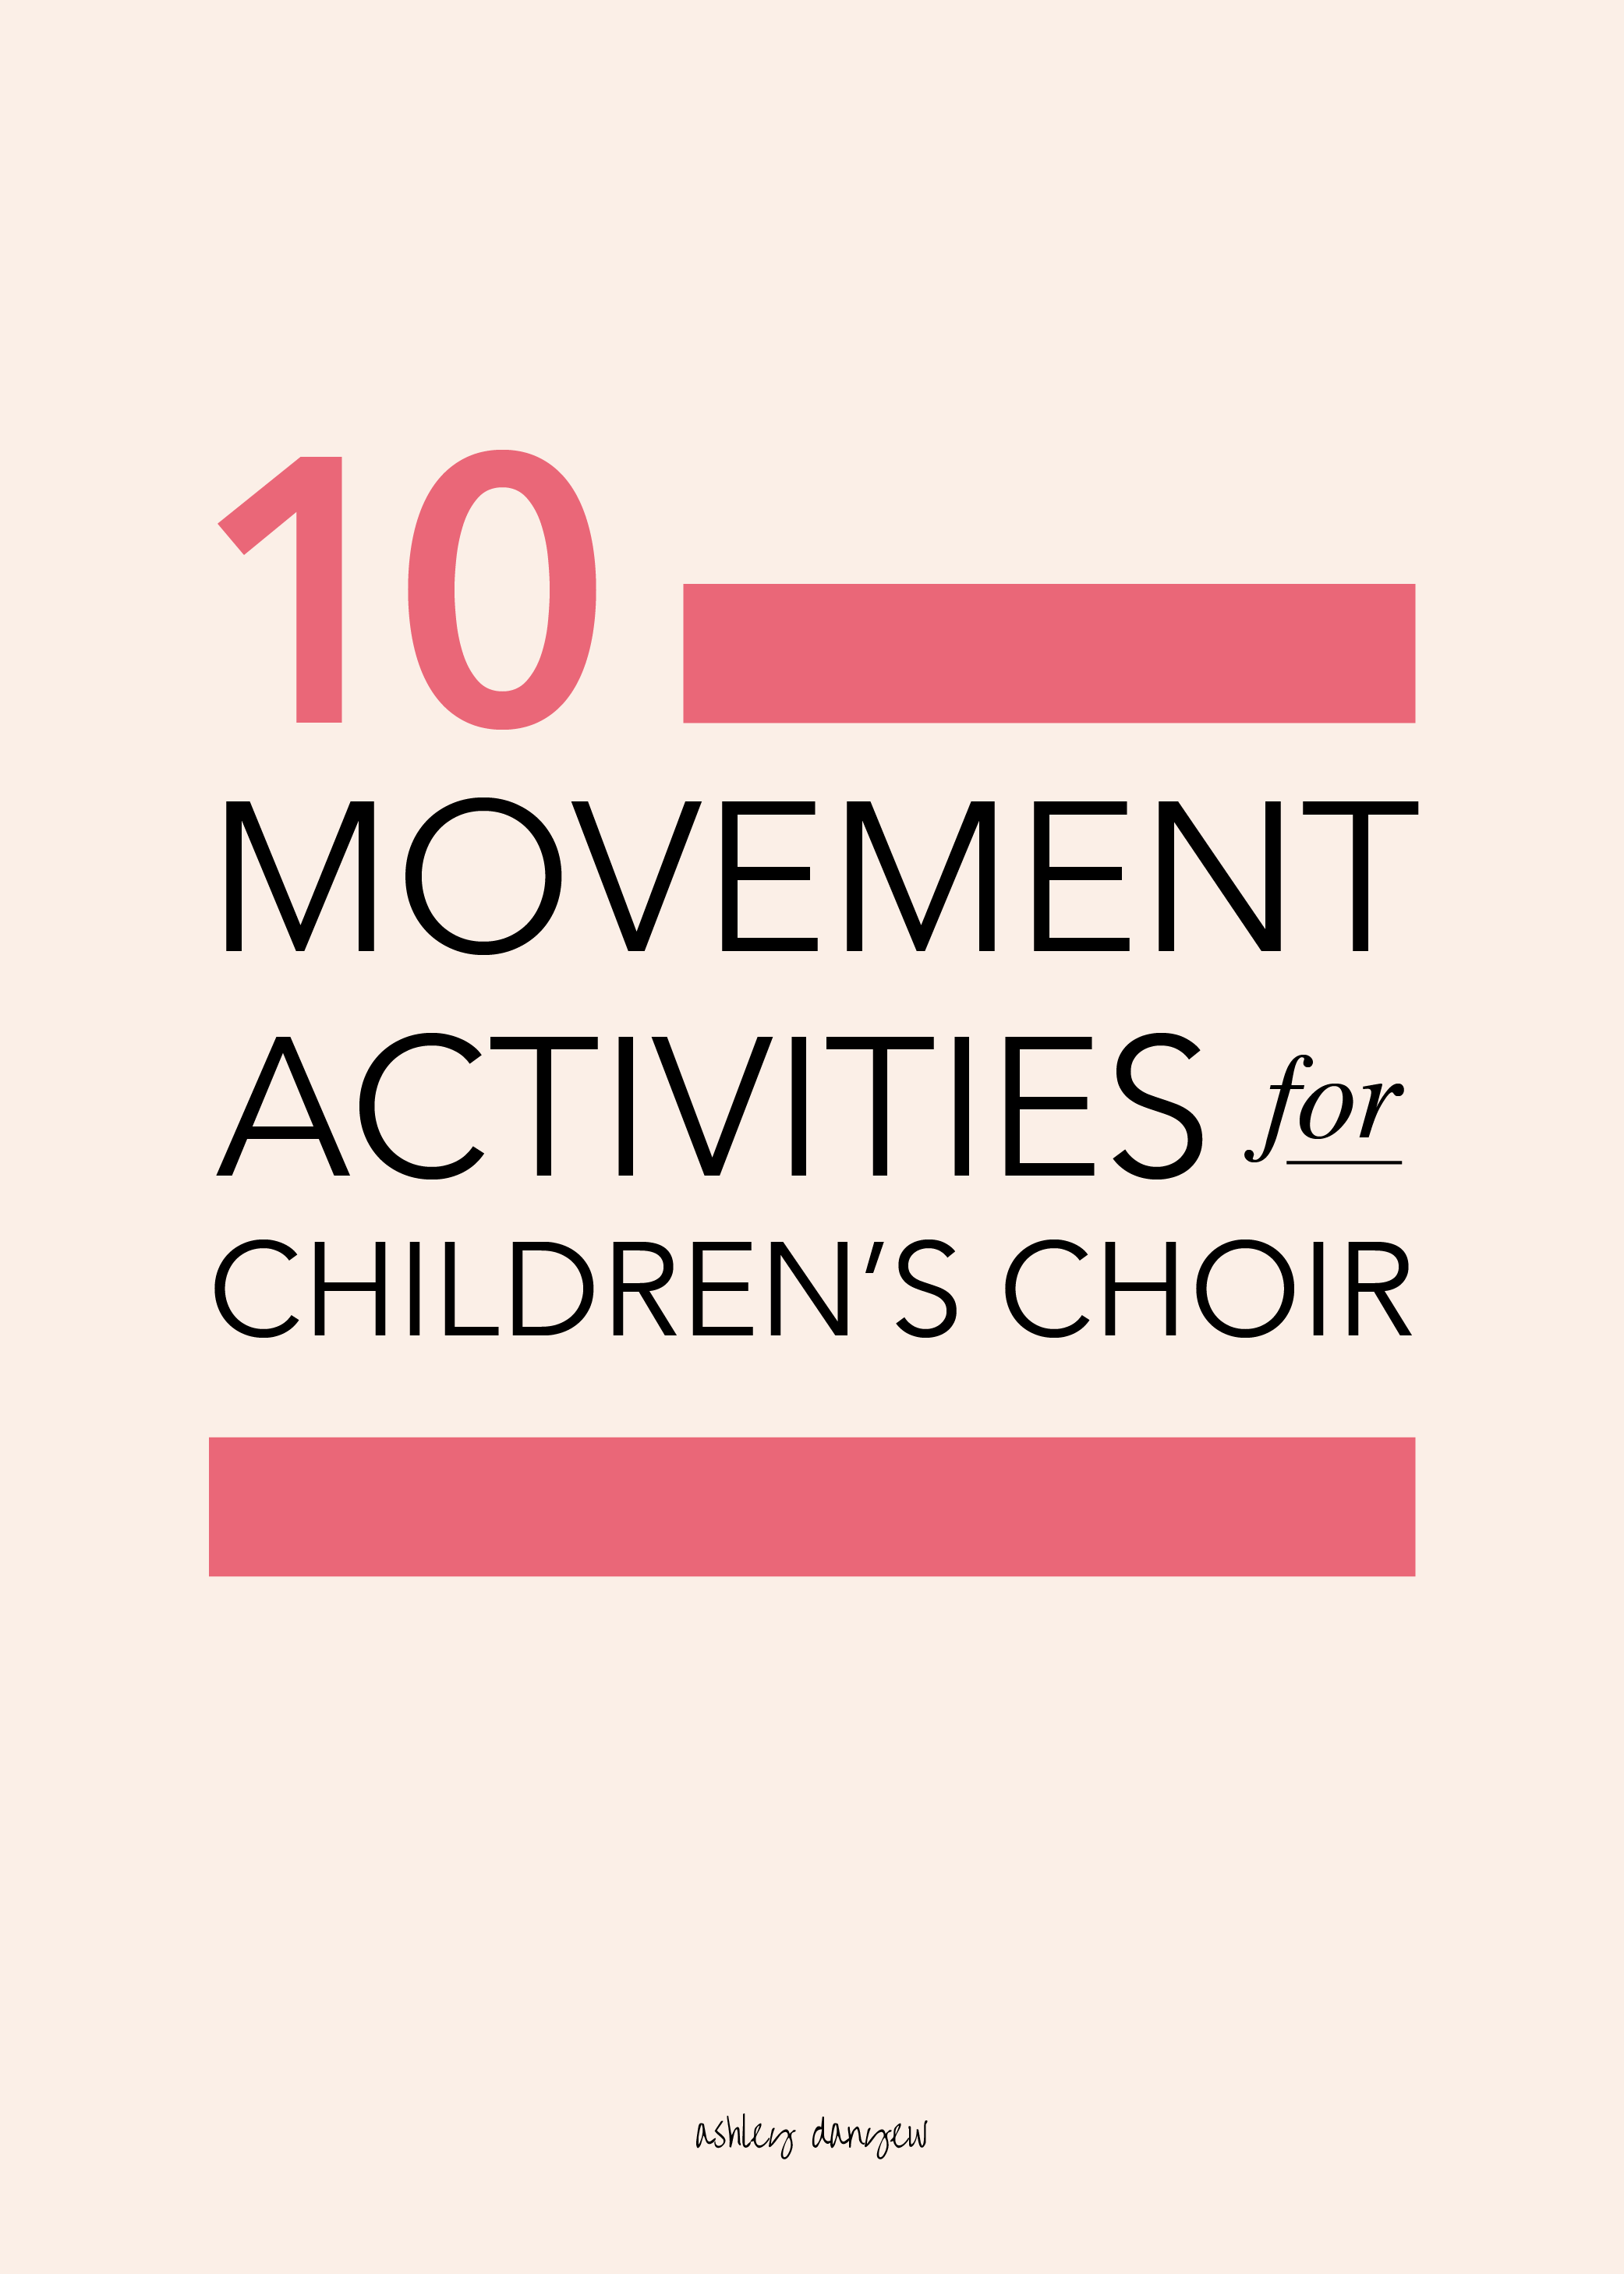 Copy of 10 Movement Activities for Children's Choir